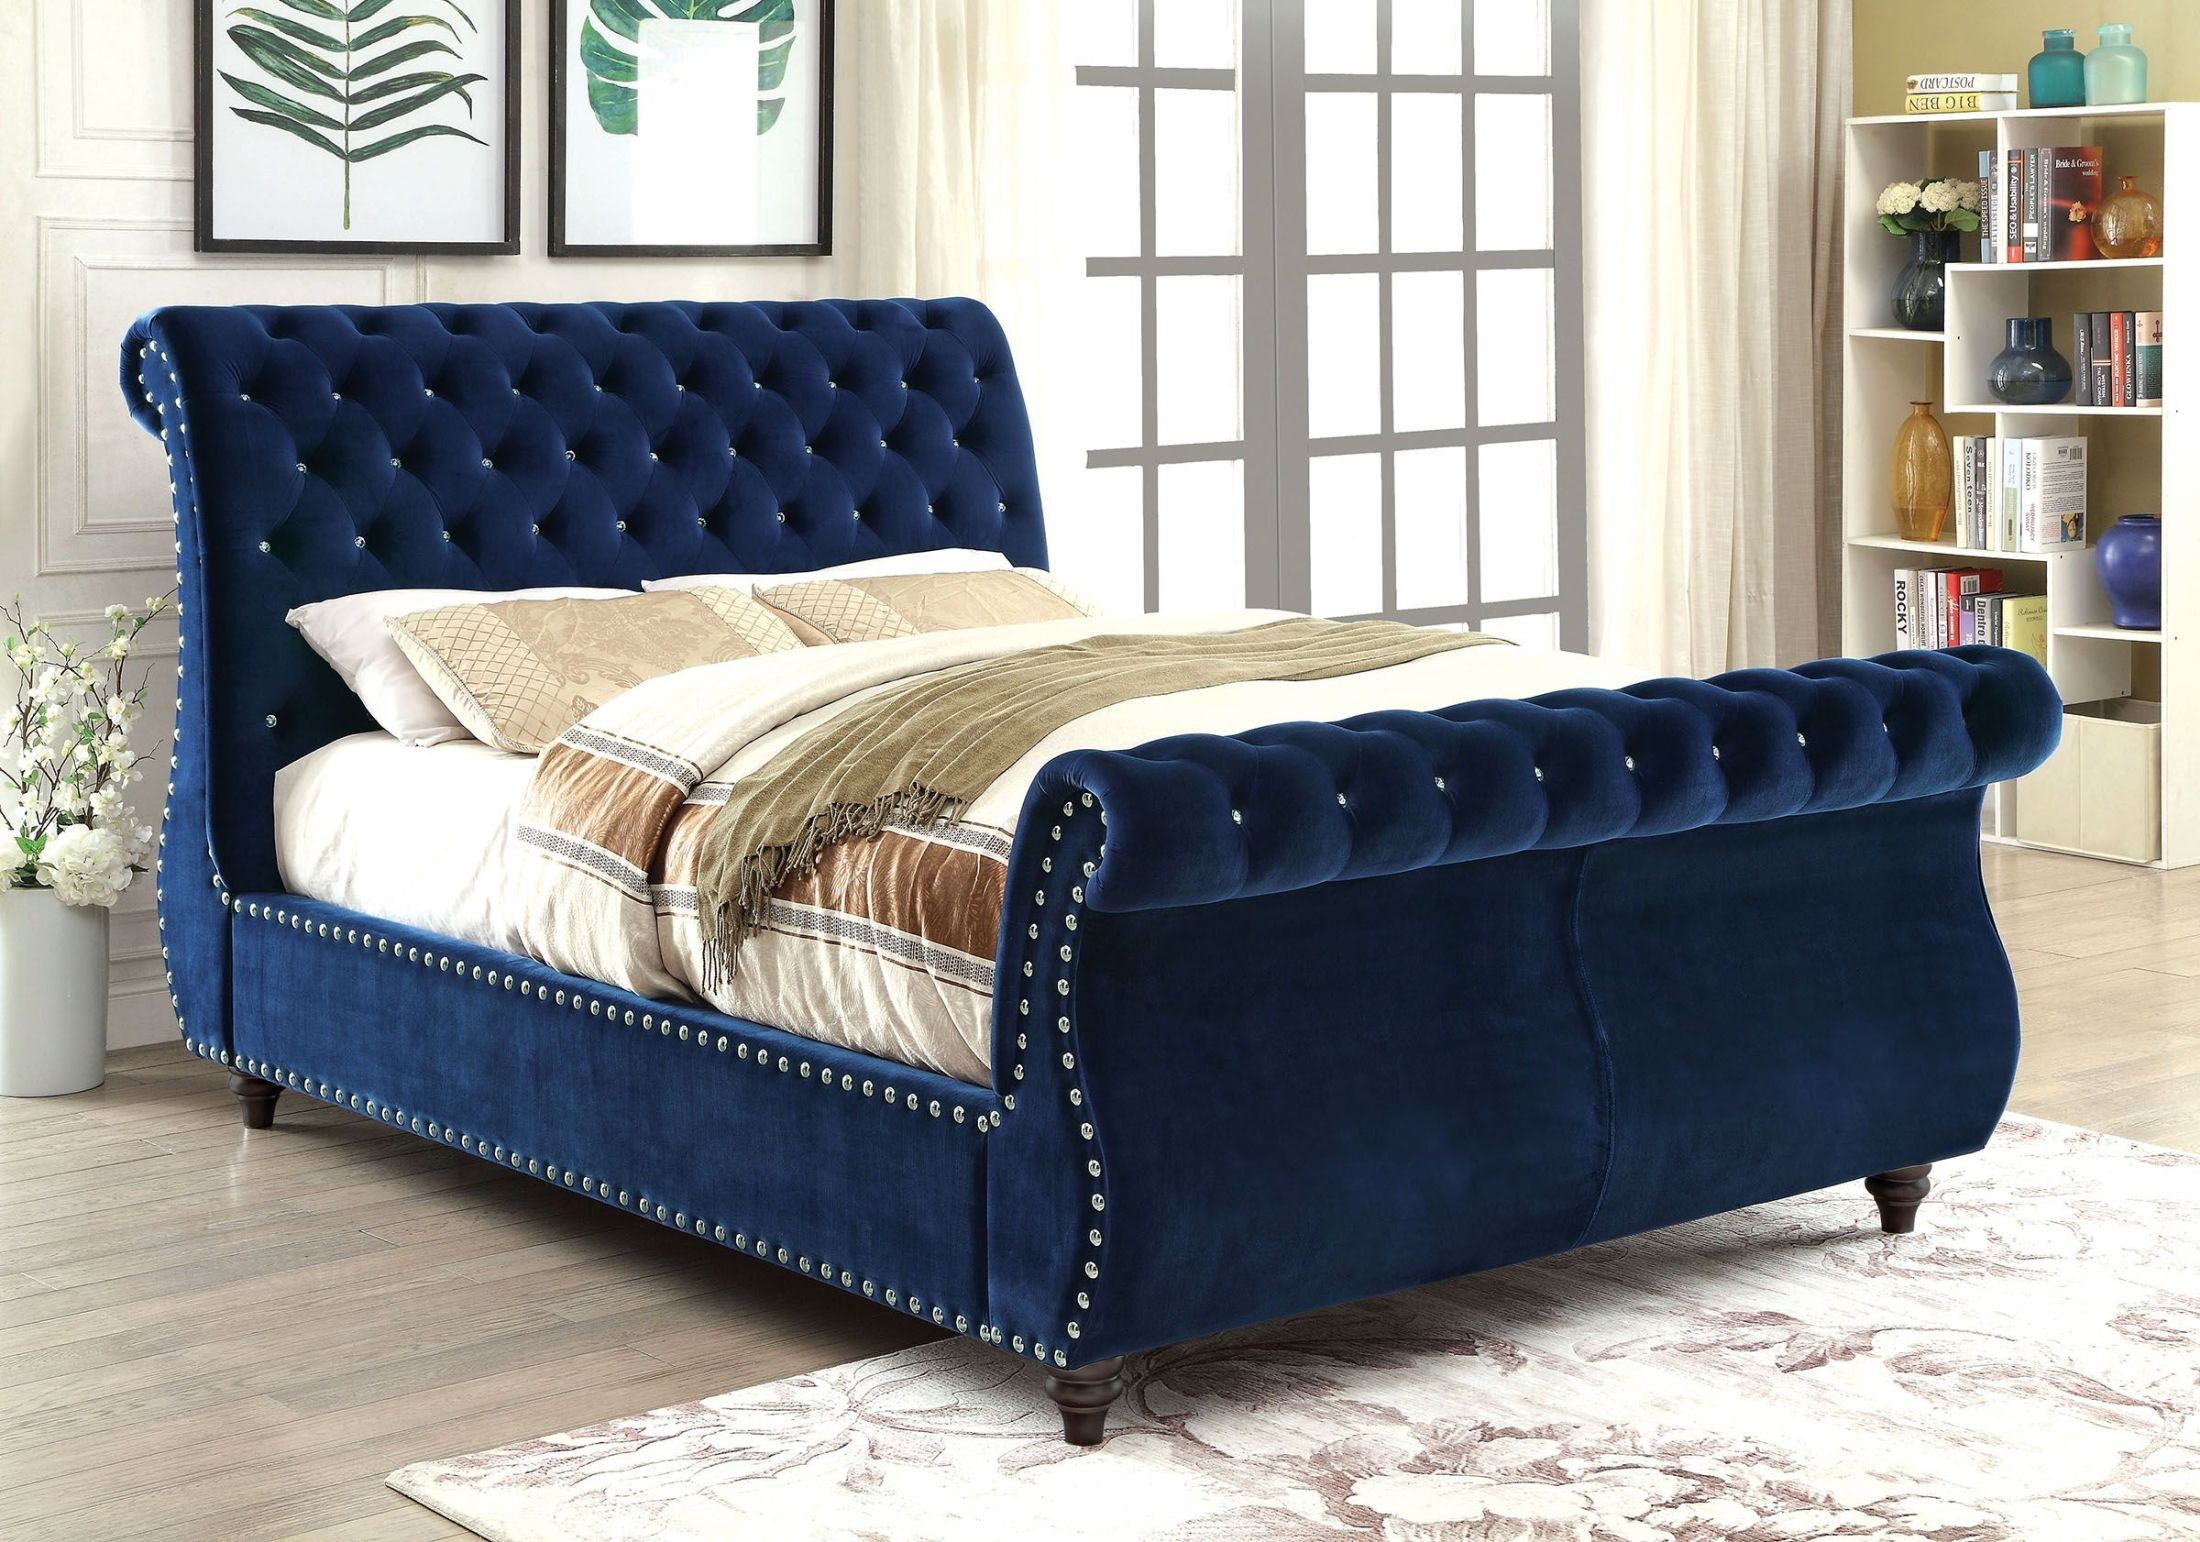 noella navy queen upholstered sleigh bed cm7128nv q furniture of america. Black Bedroom Furniture Sets. Home Design Ideas